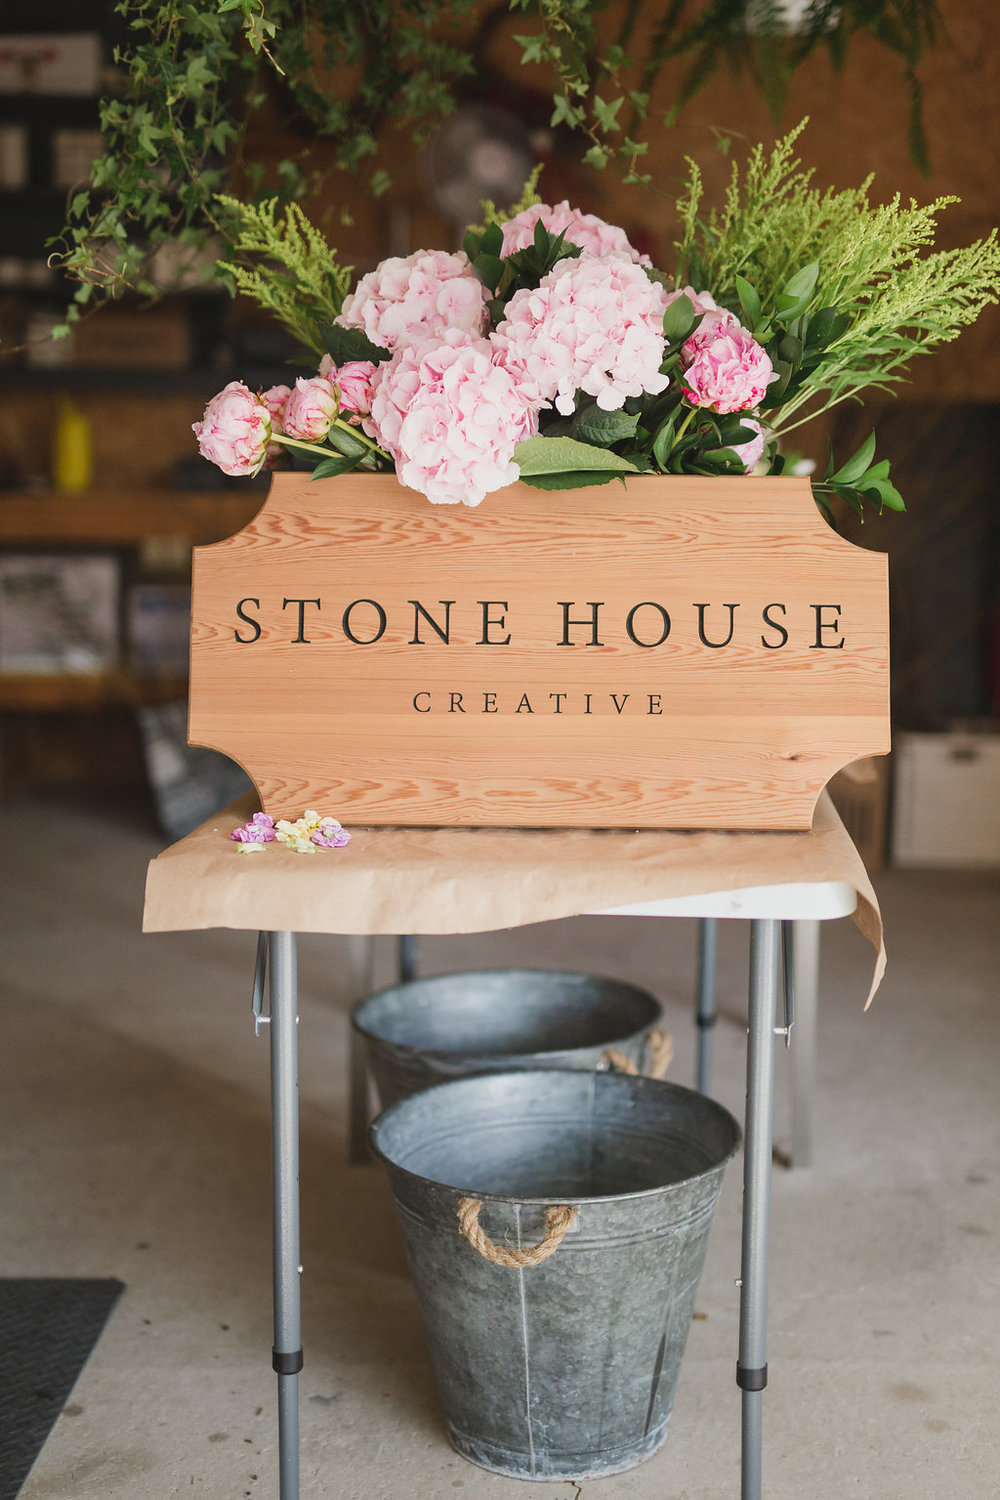 Stone House Creative Wedding Florist Studio